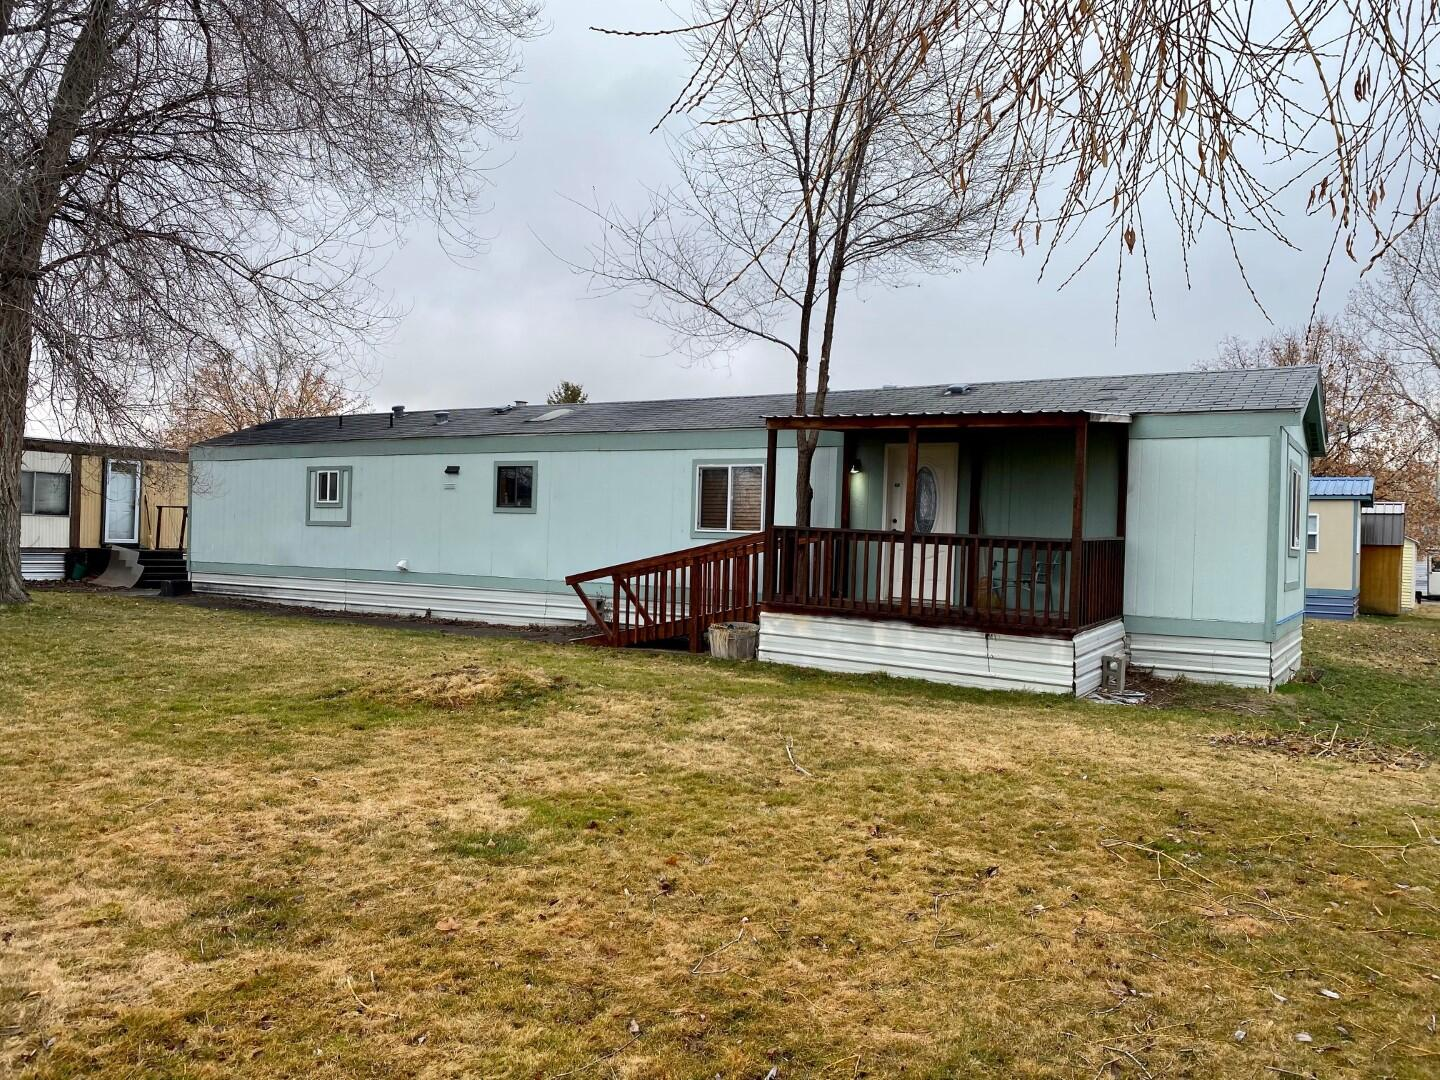 This recently updated 2 bedroom, 1 bathroom 1986 Guerdon mobile home is conveniently located in Travois Village Mobile Home Park; with easy access to downtown and the Reserve St shopping corridor. Updates include new flooring, walls, interior/exterior paint, trim, windows, cabinets, doors, skirting insulation, fully remodeled bathroom, new deck, and more.  West side of the home borders a common area which allows great west facing views off of the covered deck.  Two year old stainless steel appliances, shed and two dedicated parking spaces.Buyers must be approved by Travois Mobile Home Park.  Lot rent is $400/month plus water and sewer (approx. $30-$40/mo.